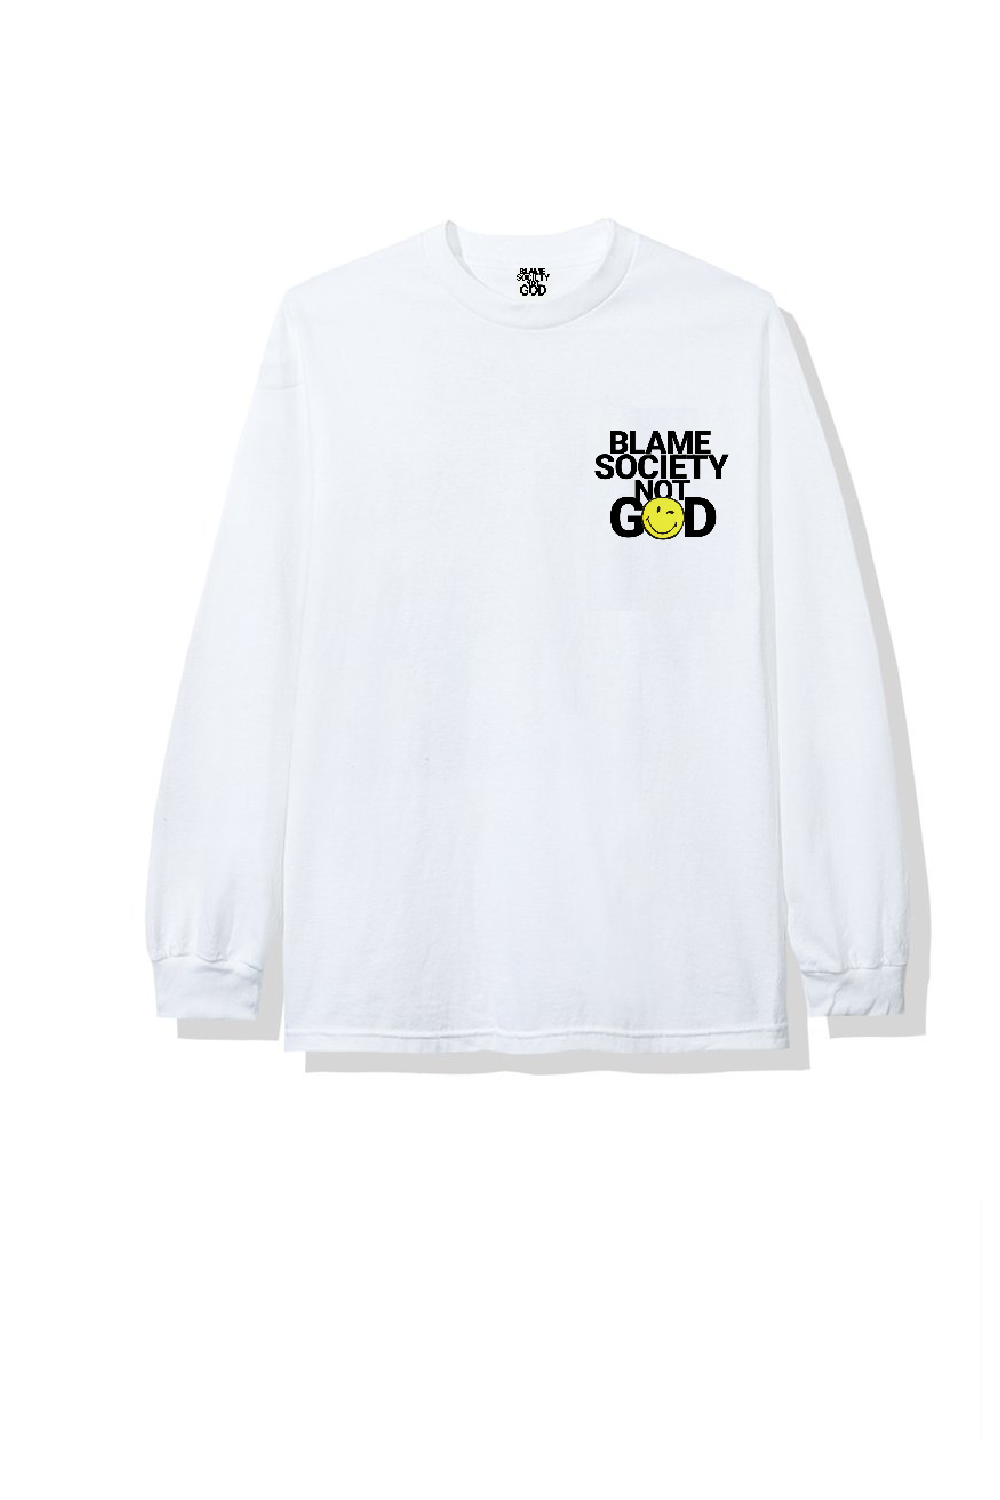 Image of BLAME SMILEY WHITE T-SHIRT LONGSLEEVES